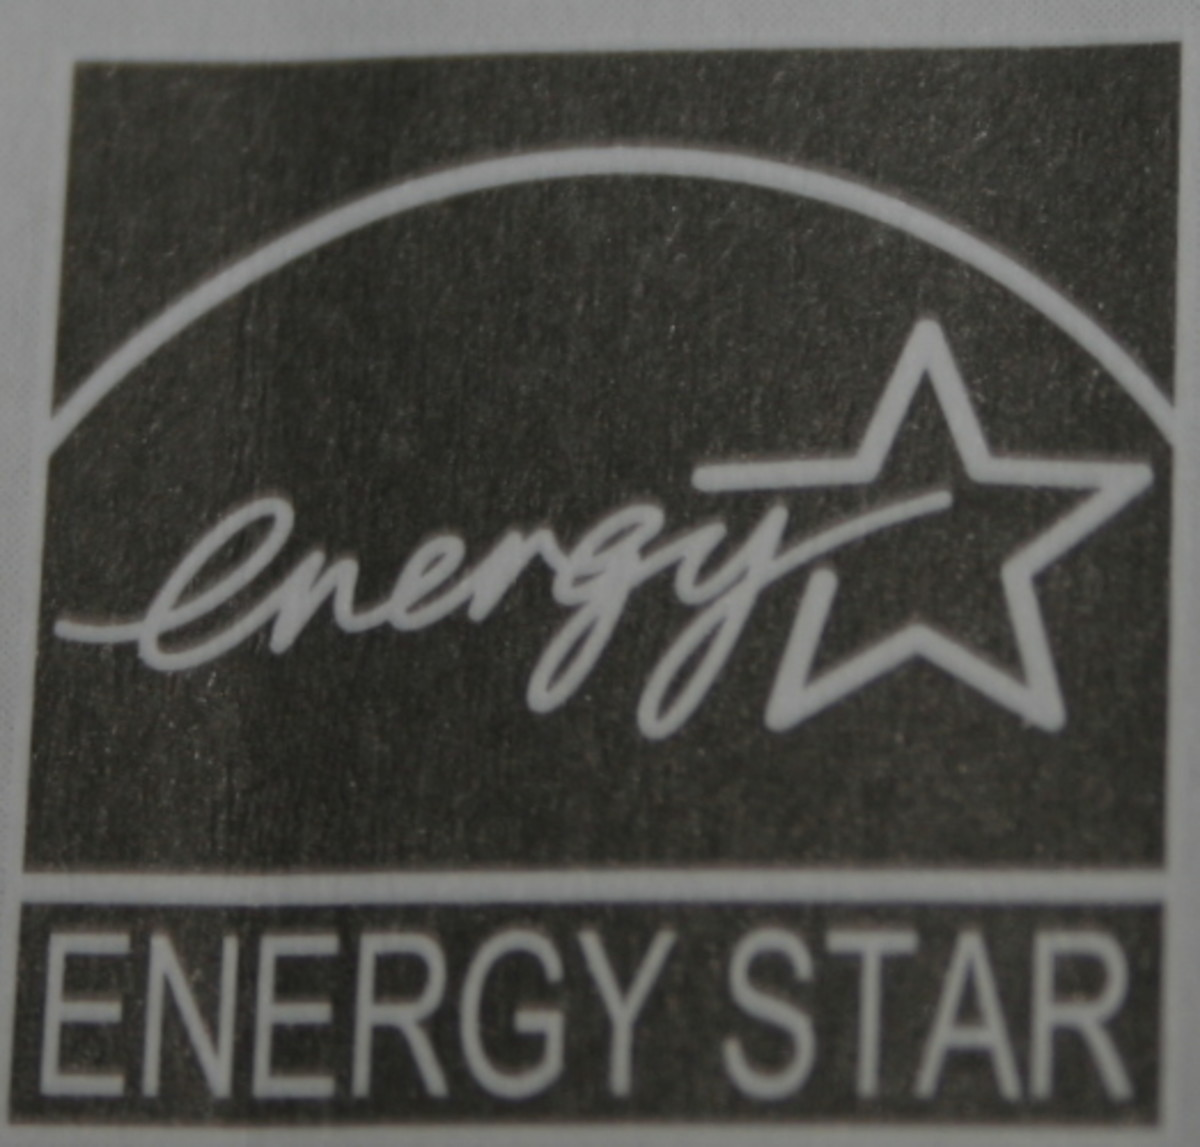 Energy Star is a program in the United States   that helps businesses and individuals save money through superior energy efficiency.